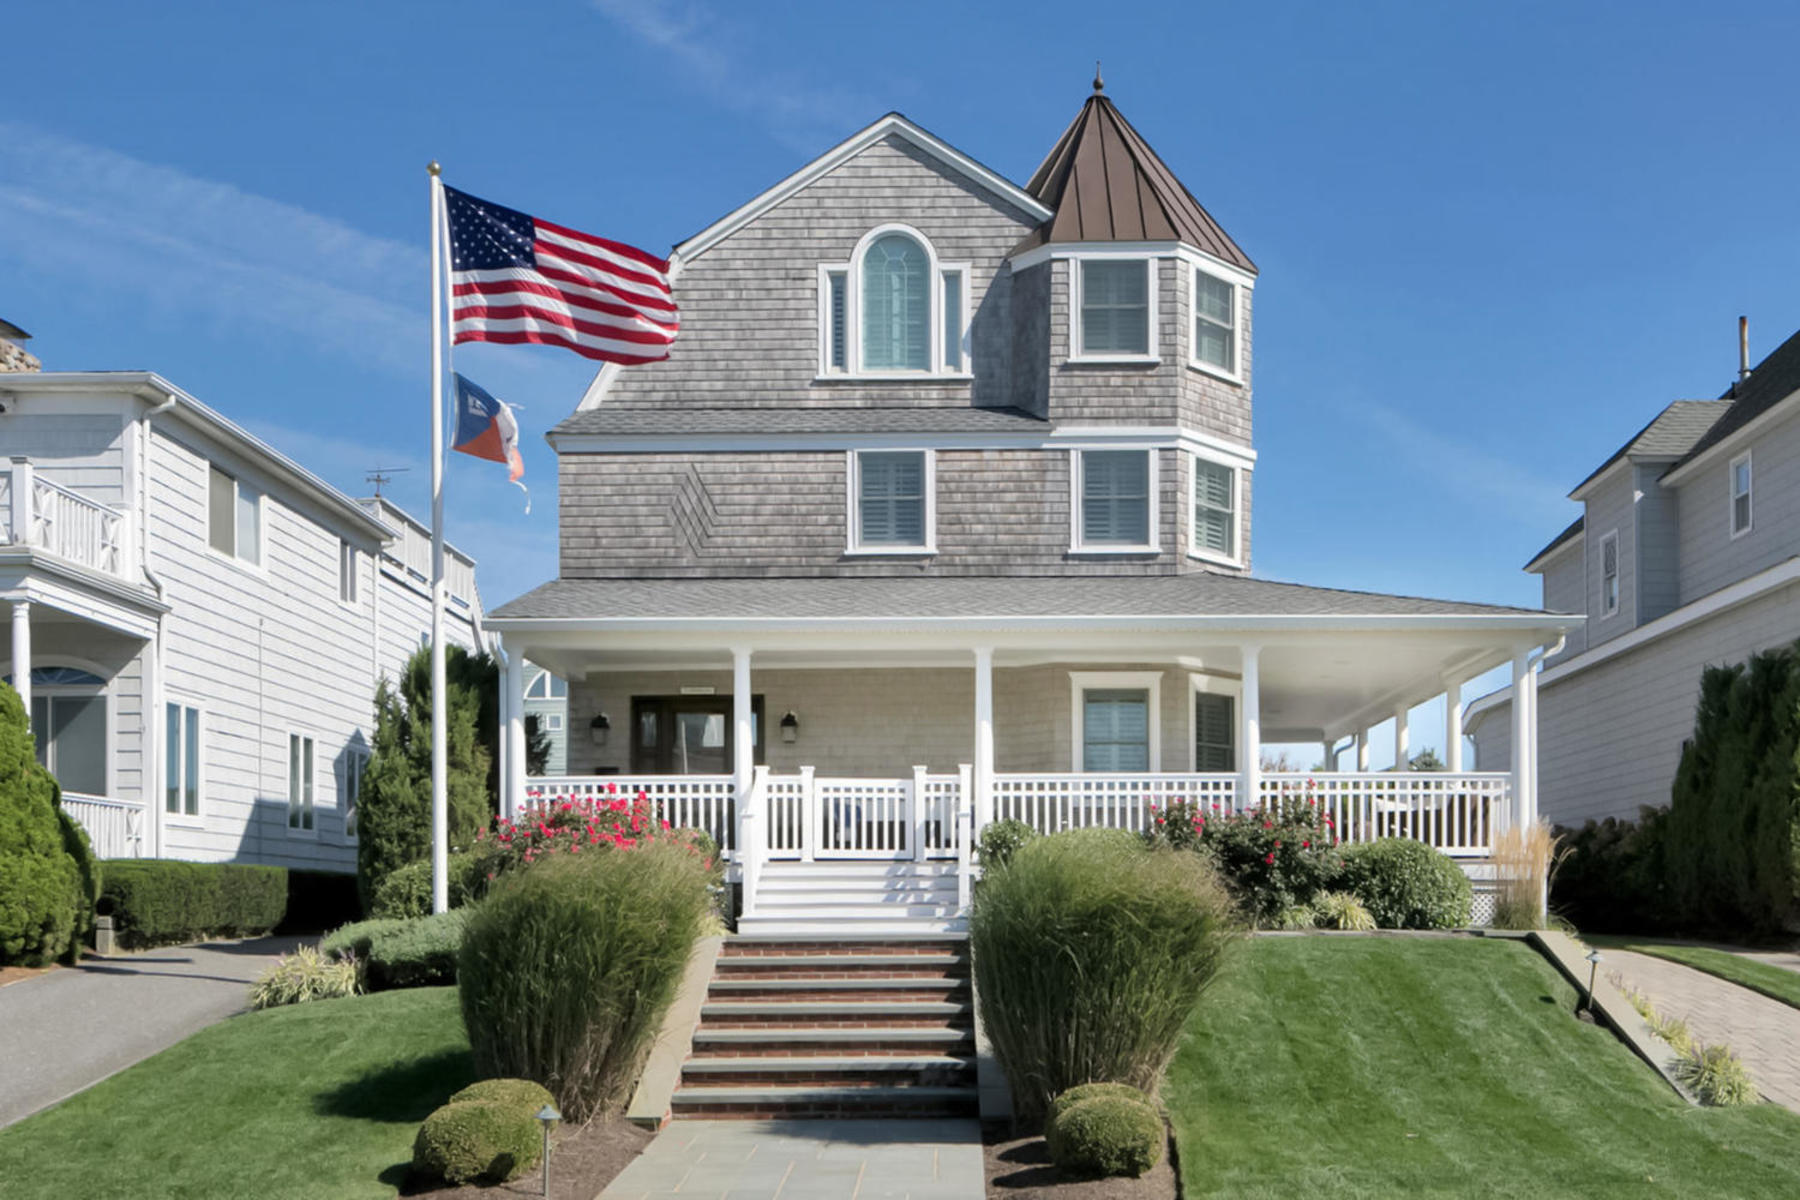 Single Family Homes for Sale at In a Class by Itself 3 Beacon Boulevard Sea Girt, New Jersey 08750 United States